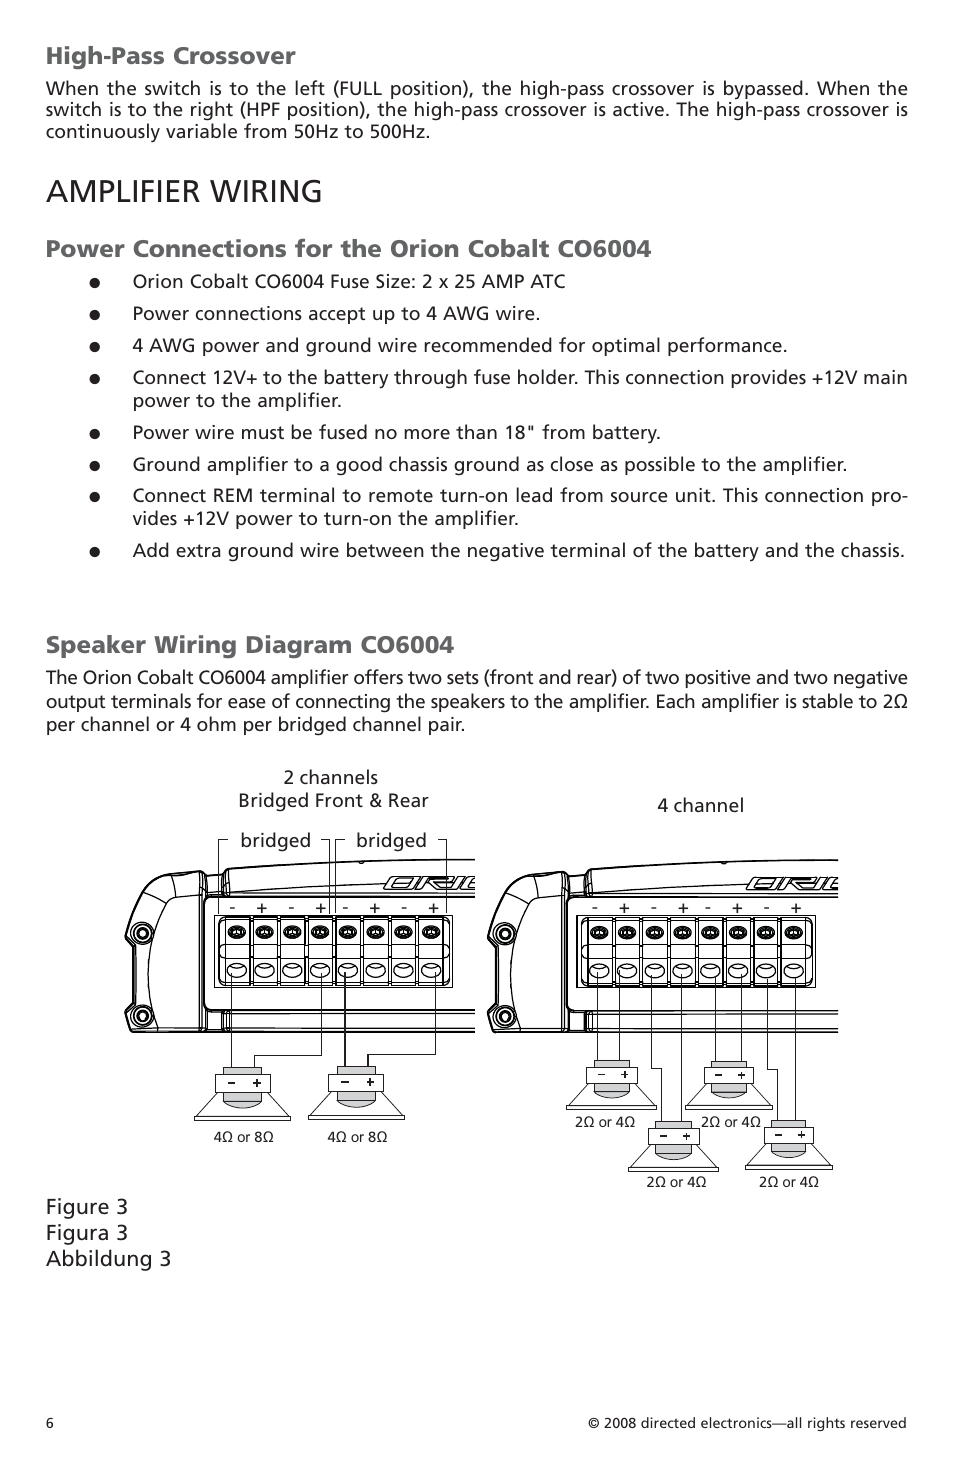 Amplifier wiring, High-pass crossover, Power connections for the orion  cobalt co6004 | Orion Car Audio CO6004 User Manual | Page 7 / 66